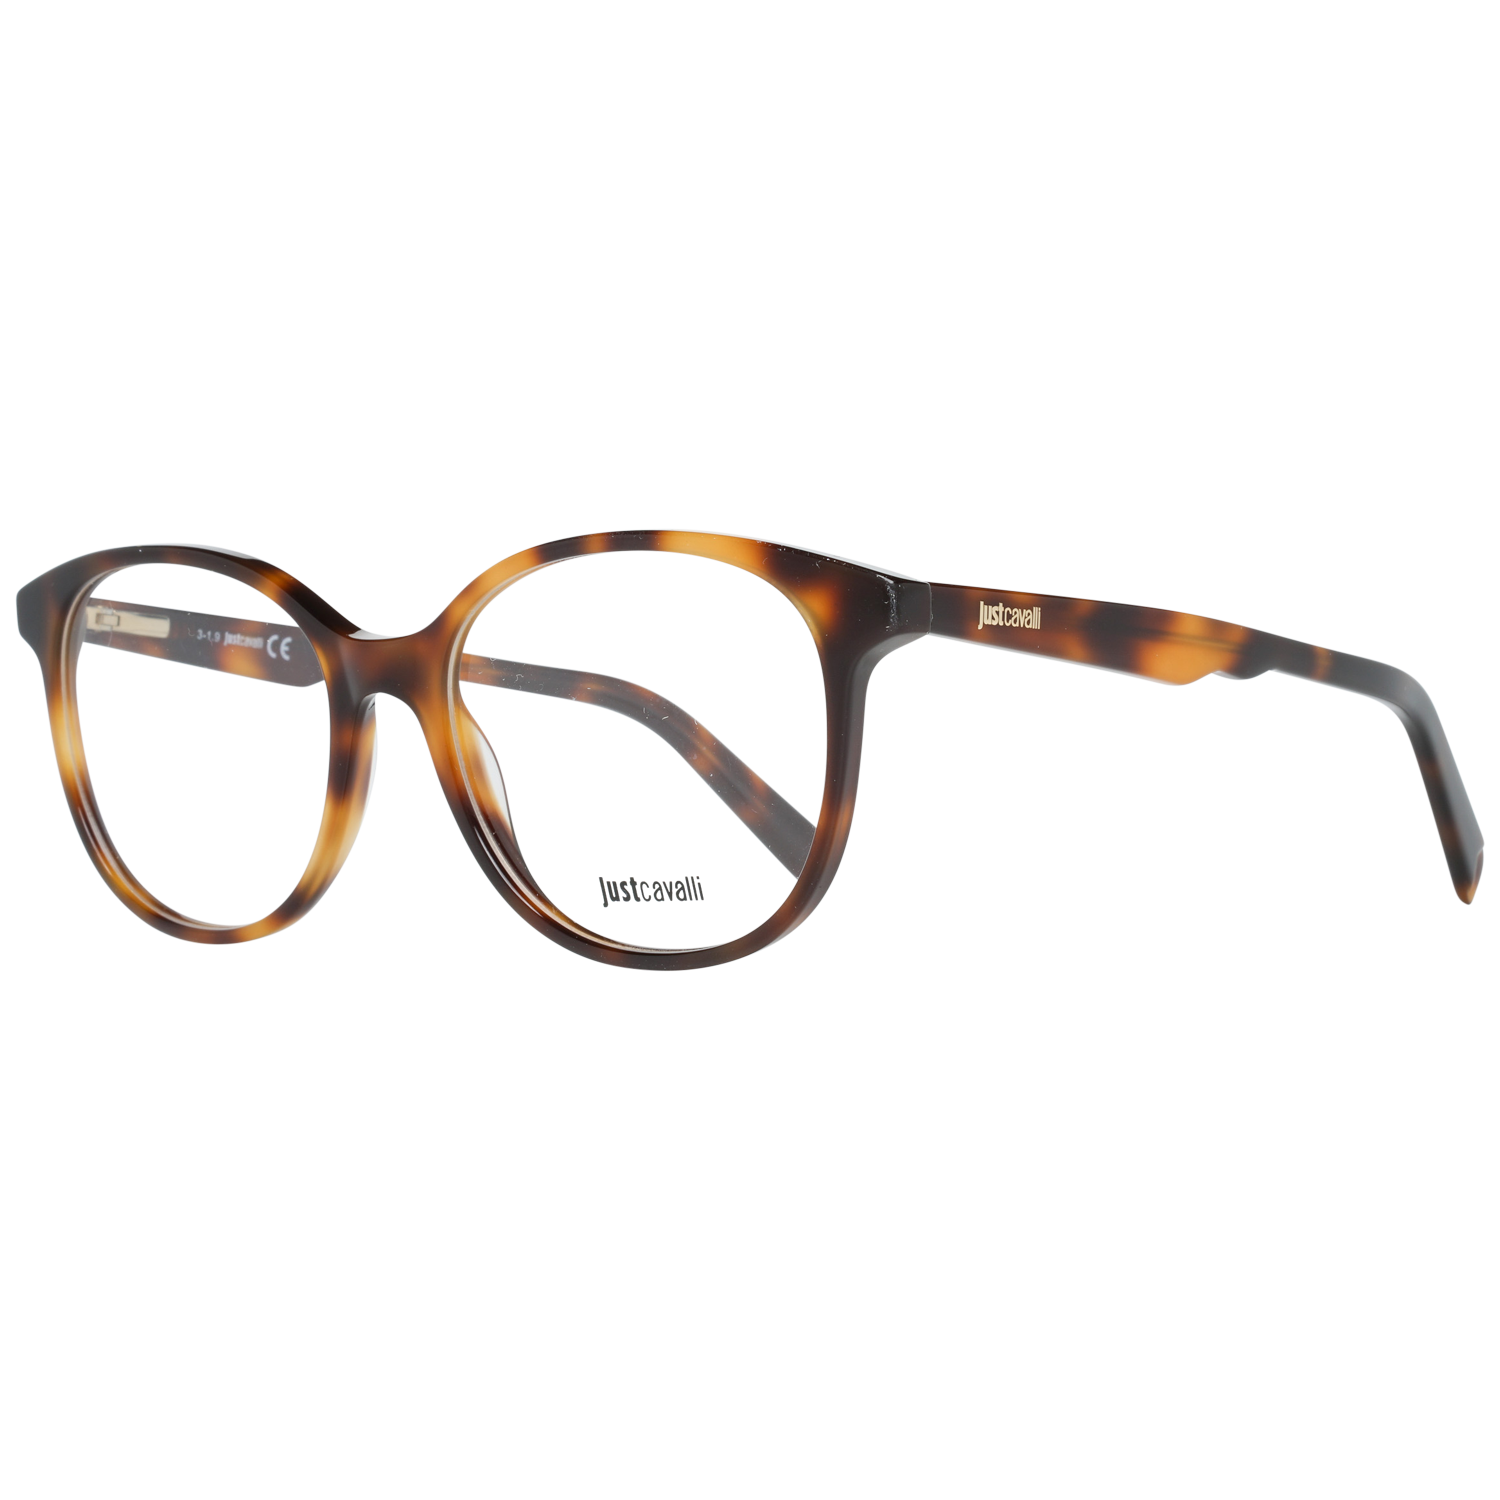 Just Cavalli Optical Frame JC0892 052 54 Brown